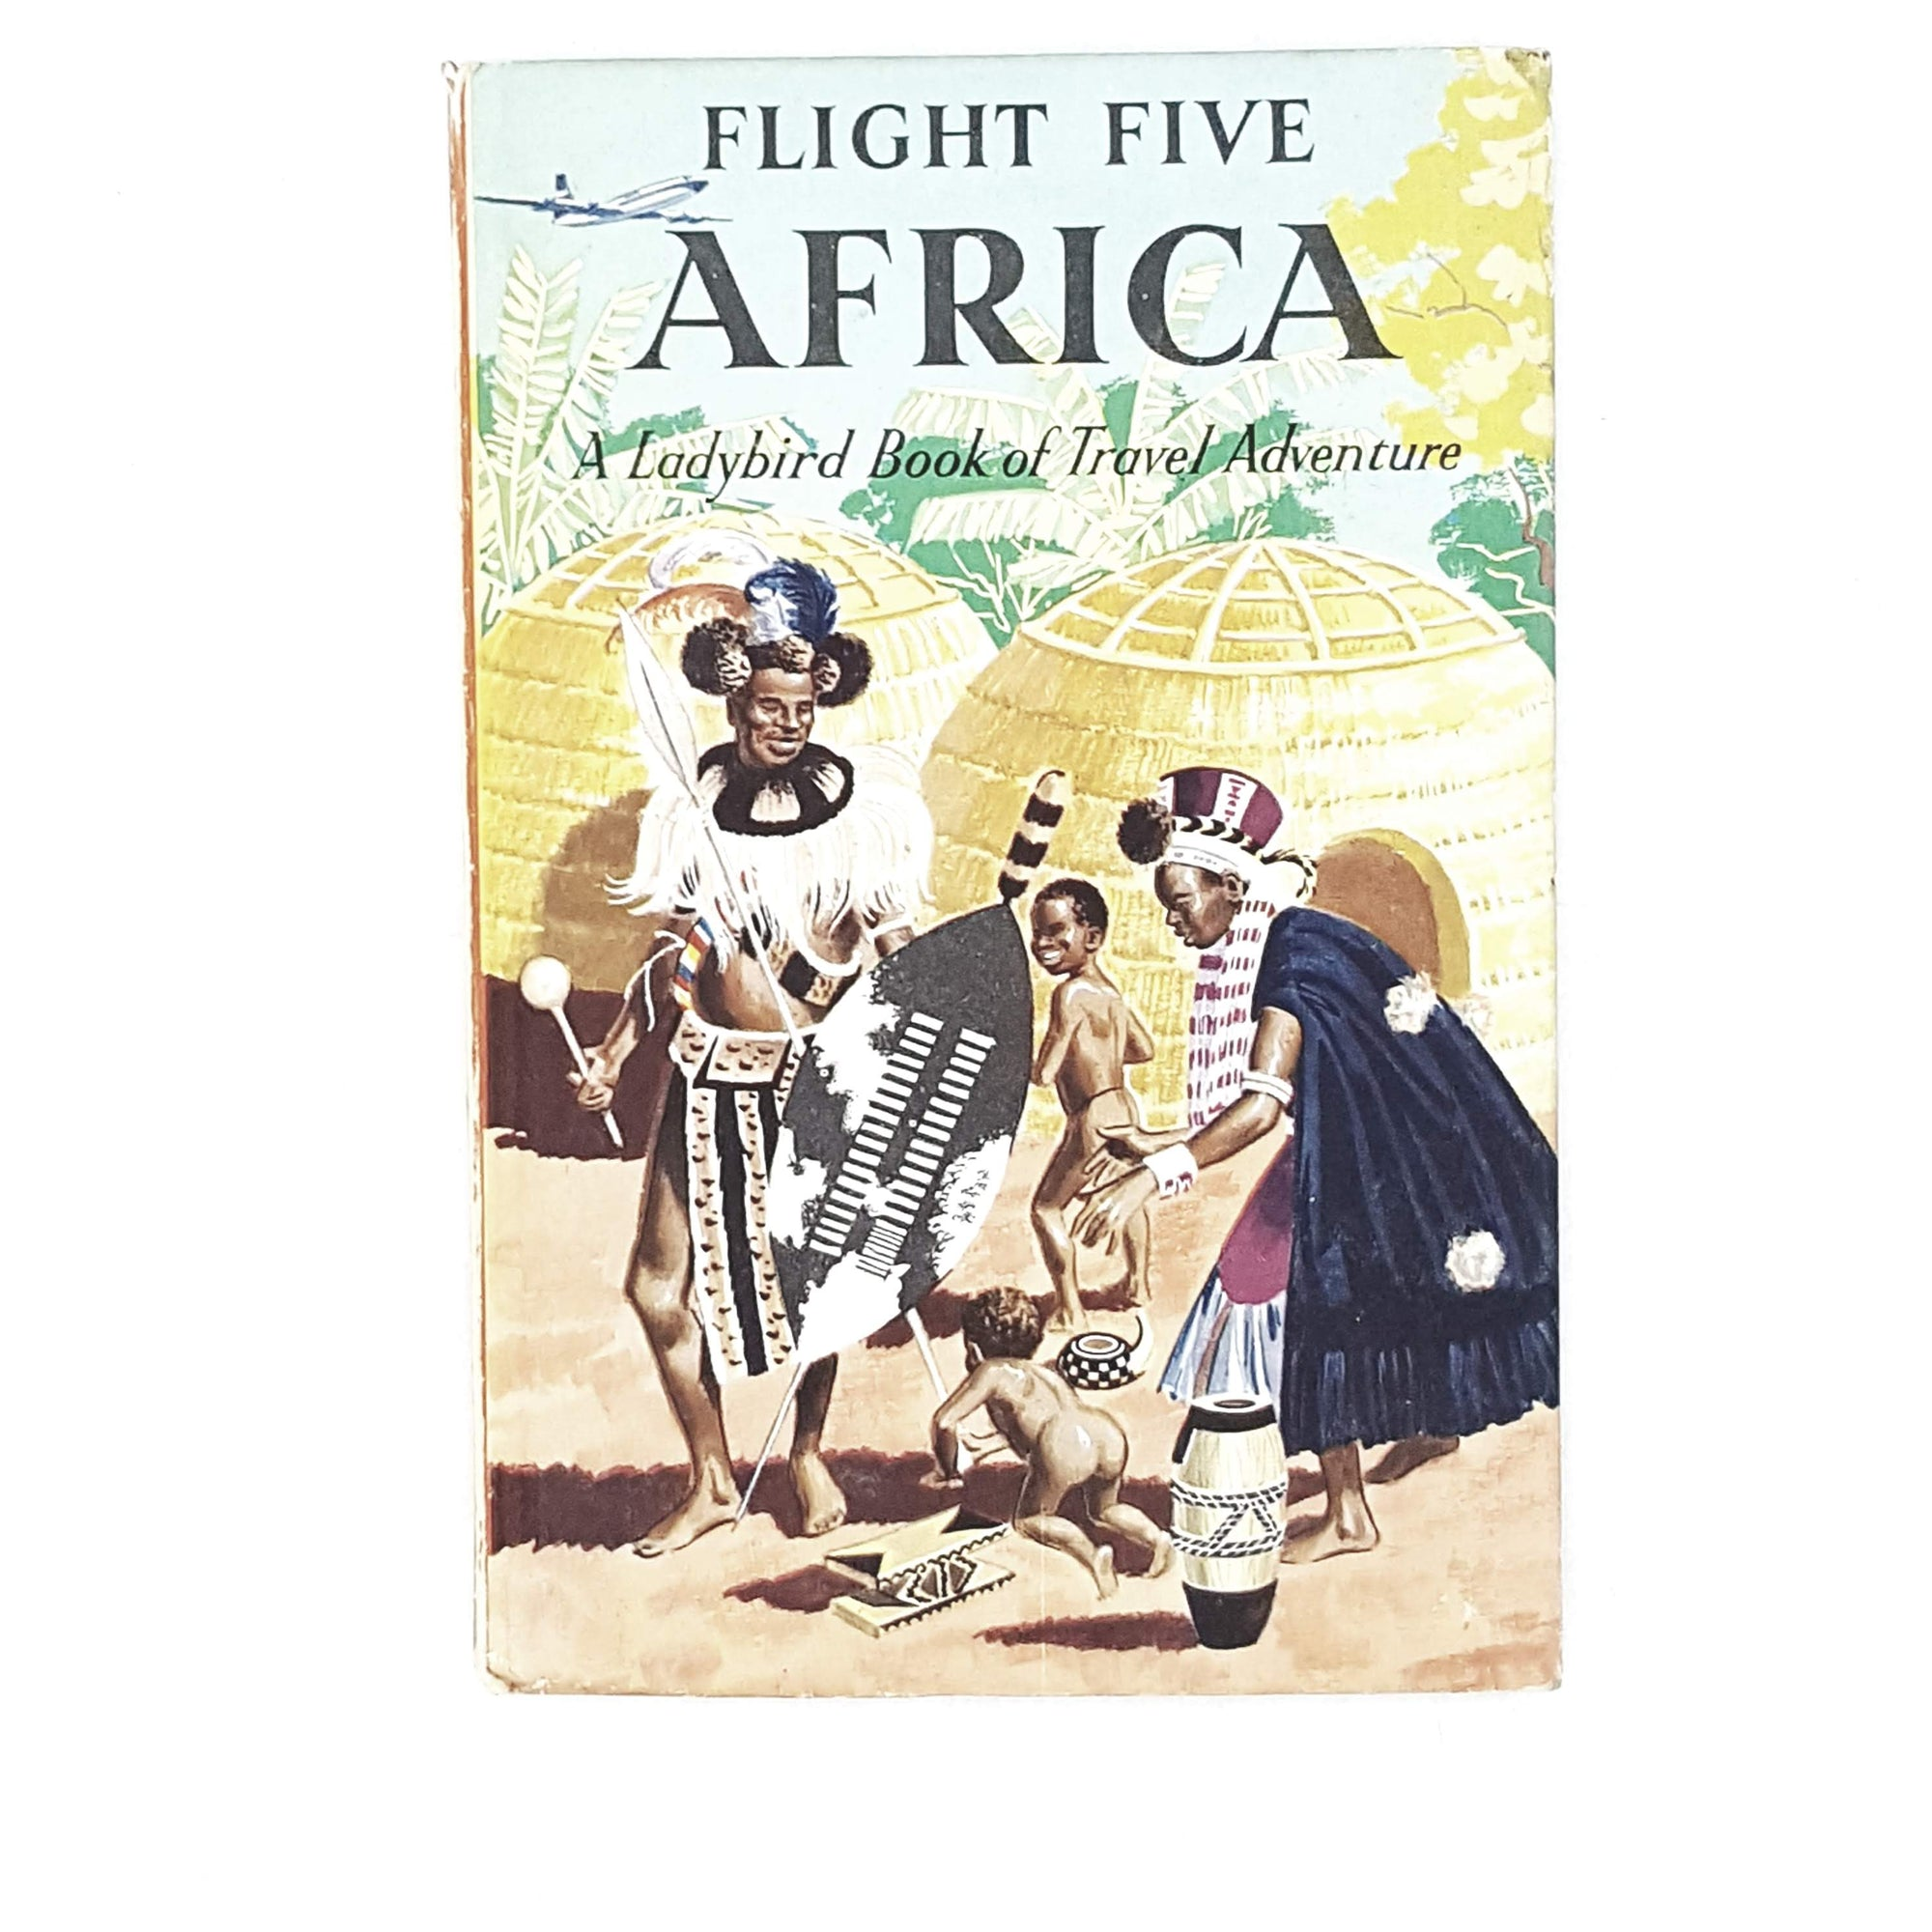 Vintage Ladybird: Flight Five Africa 1961